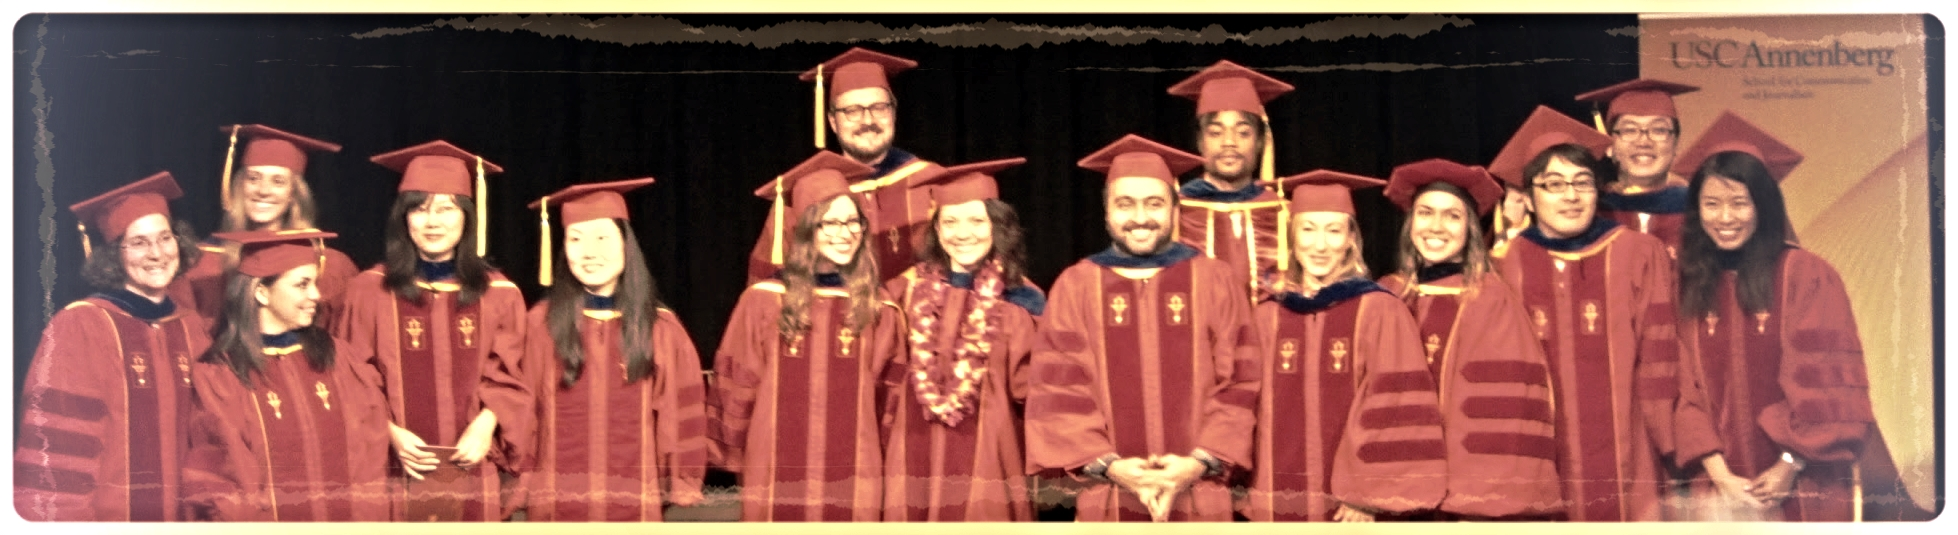 The newly minted PhD's from USC Annenberg. (Stylés Back Row Center-Right)